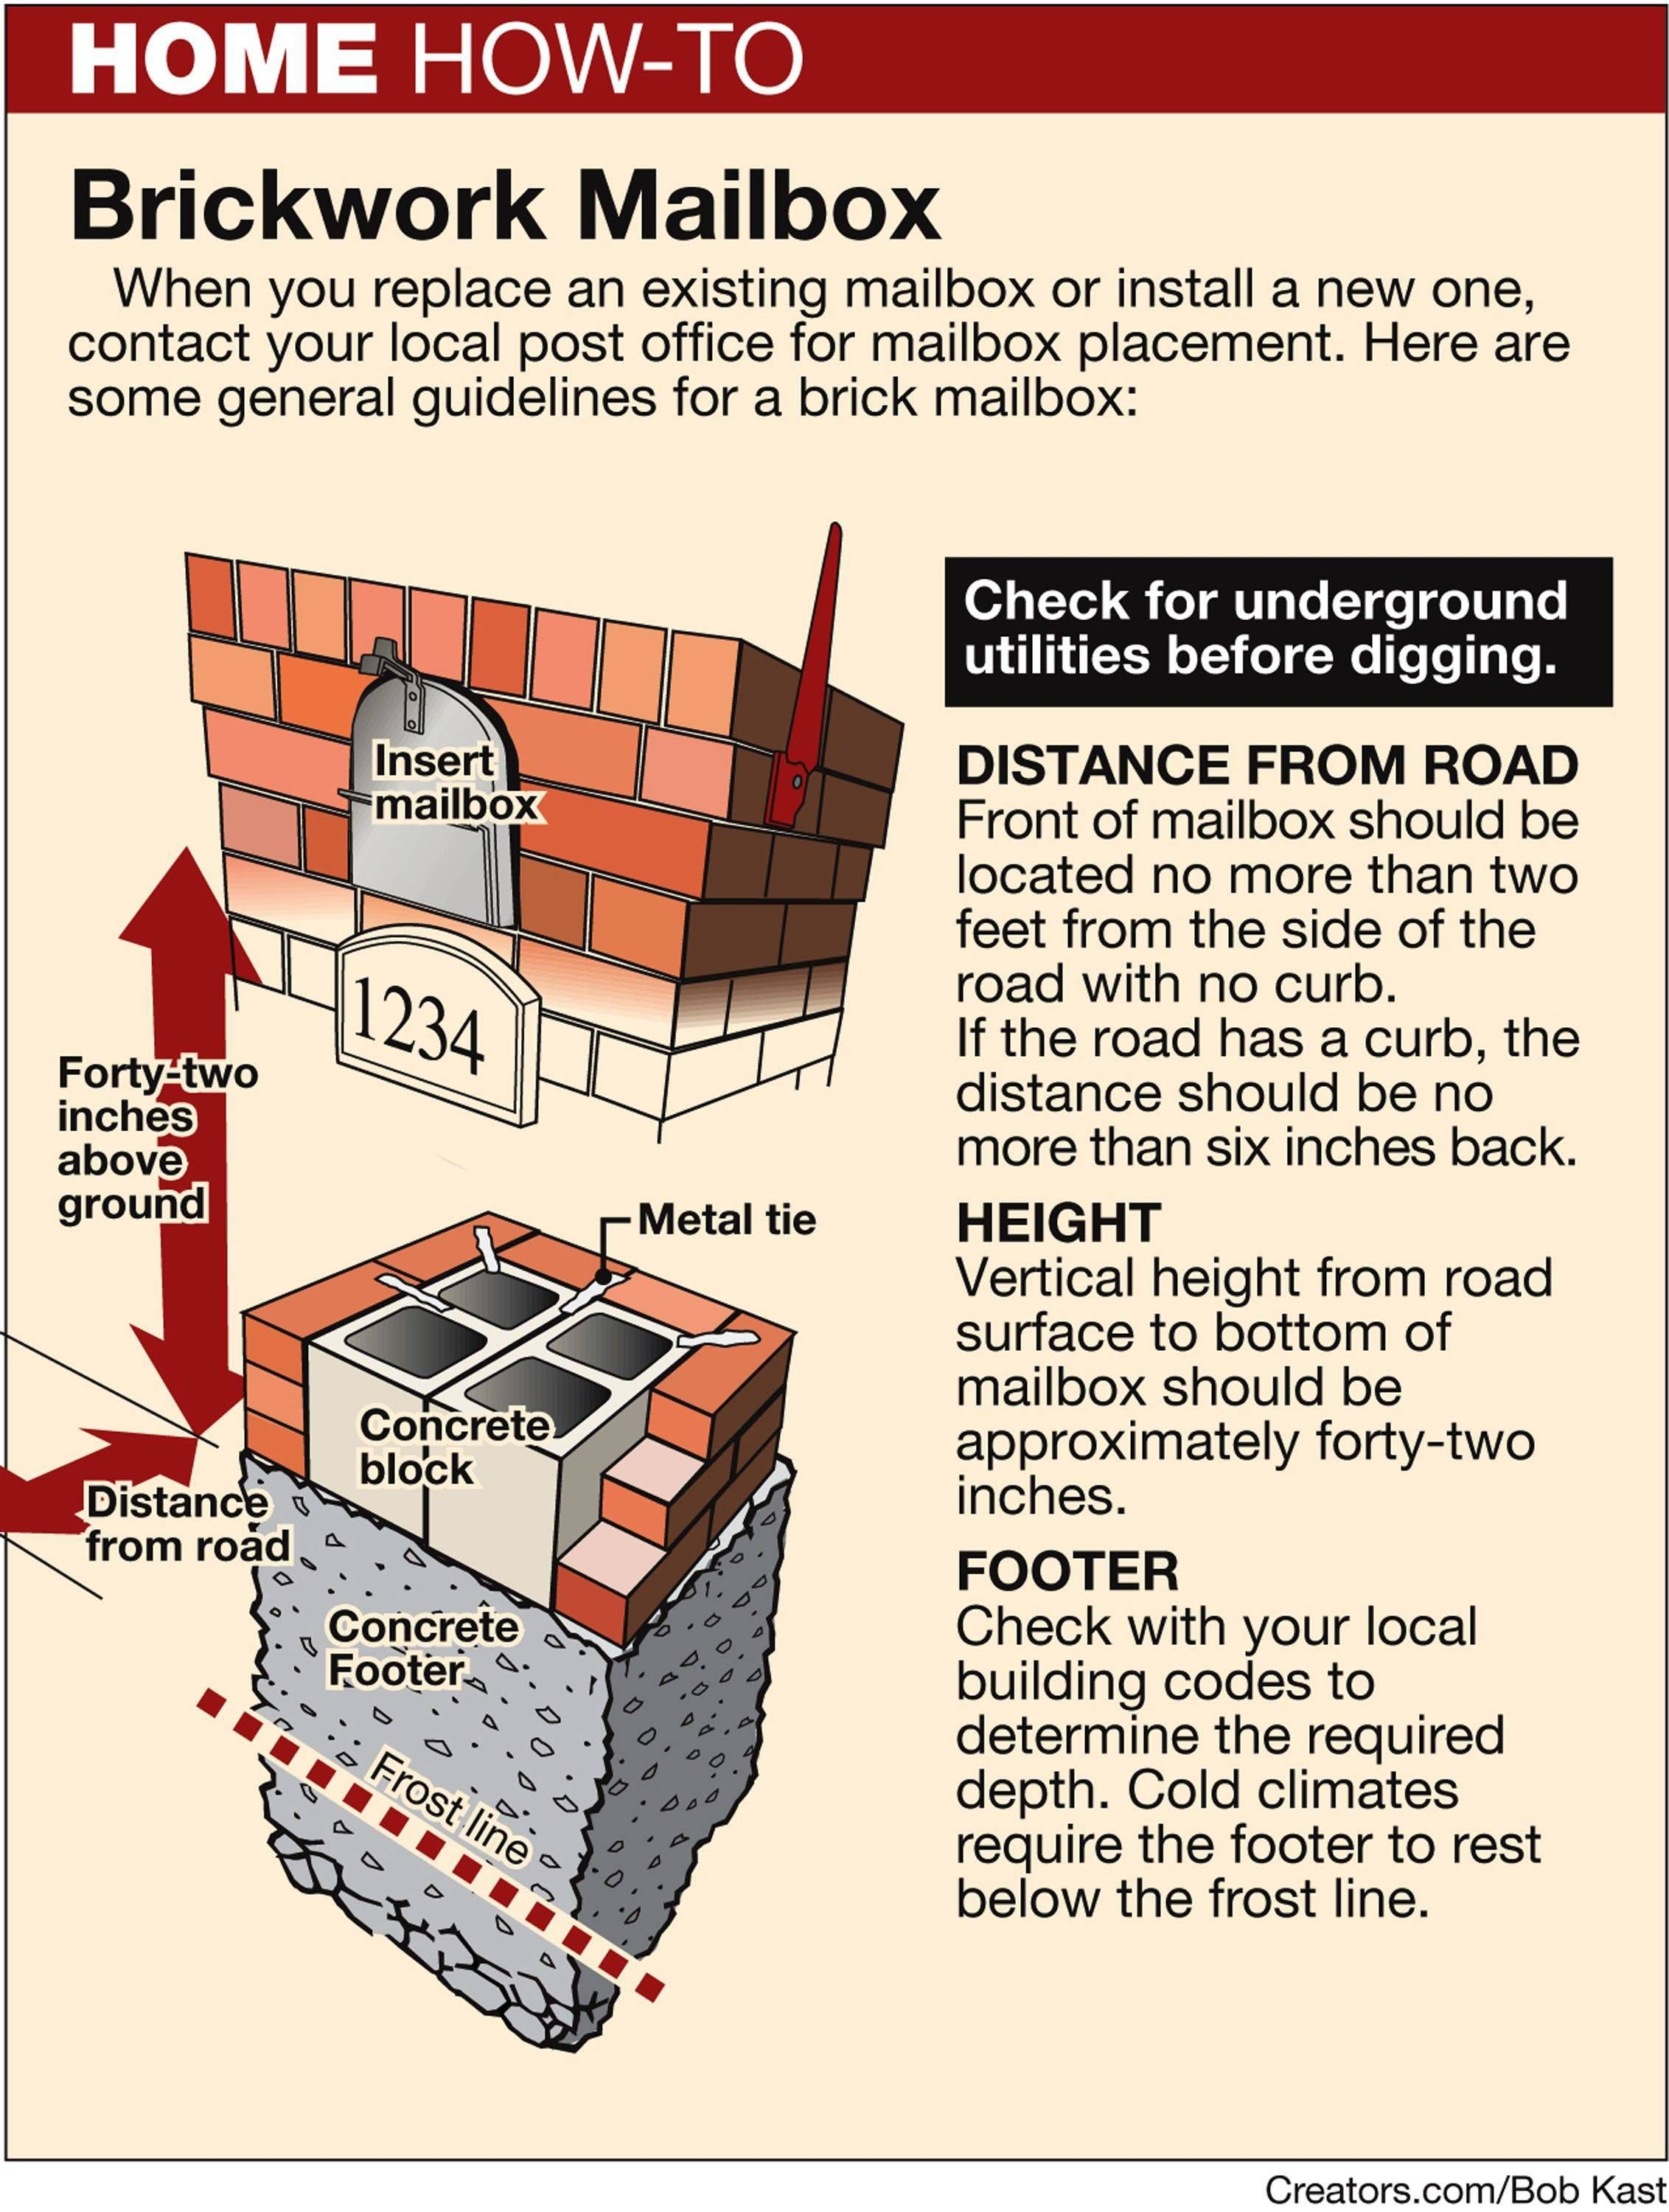 How to build a brick mailbox yourself | DIY and Renovation Ideas